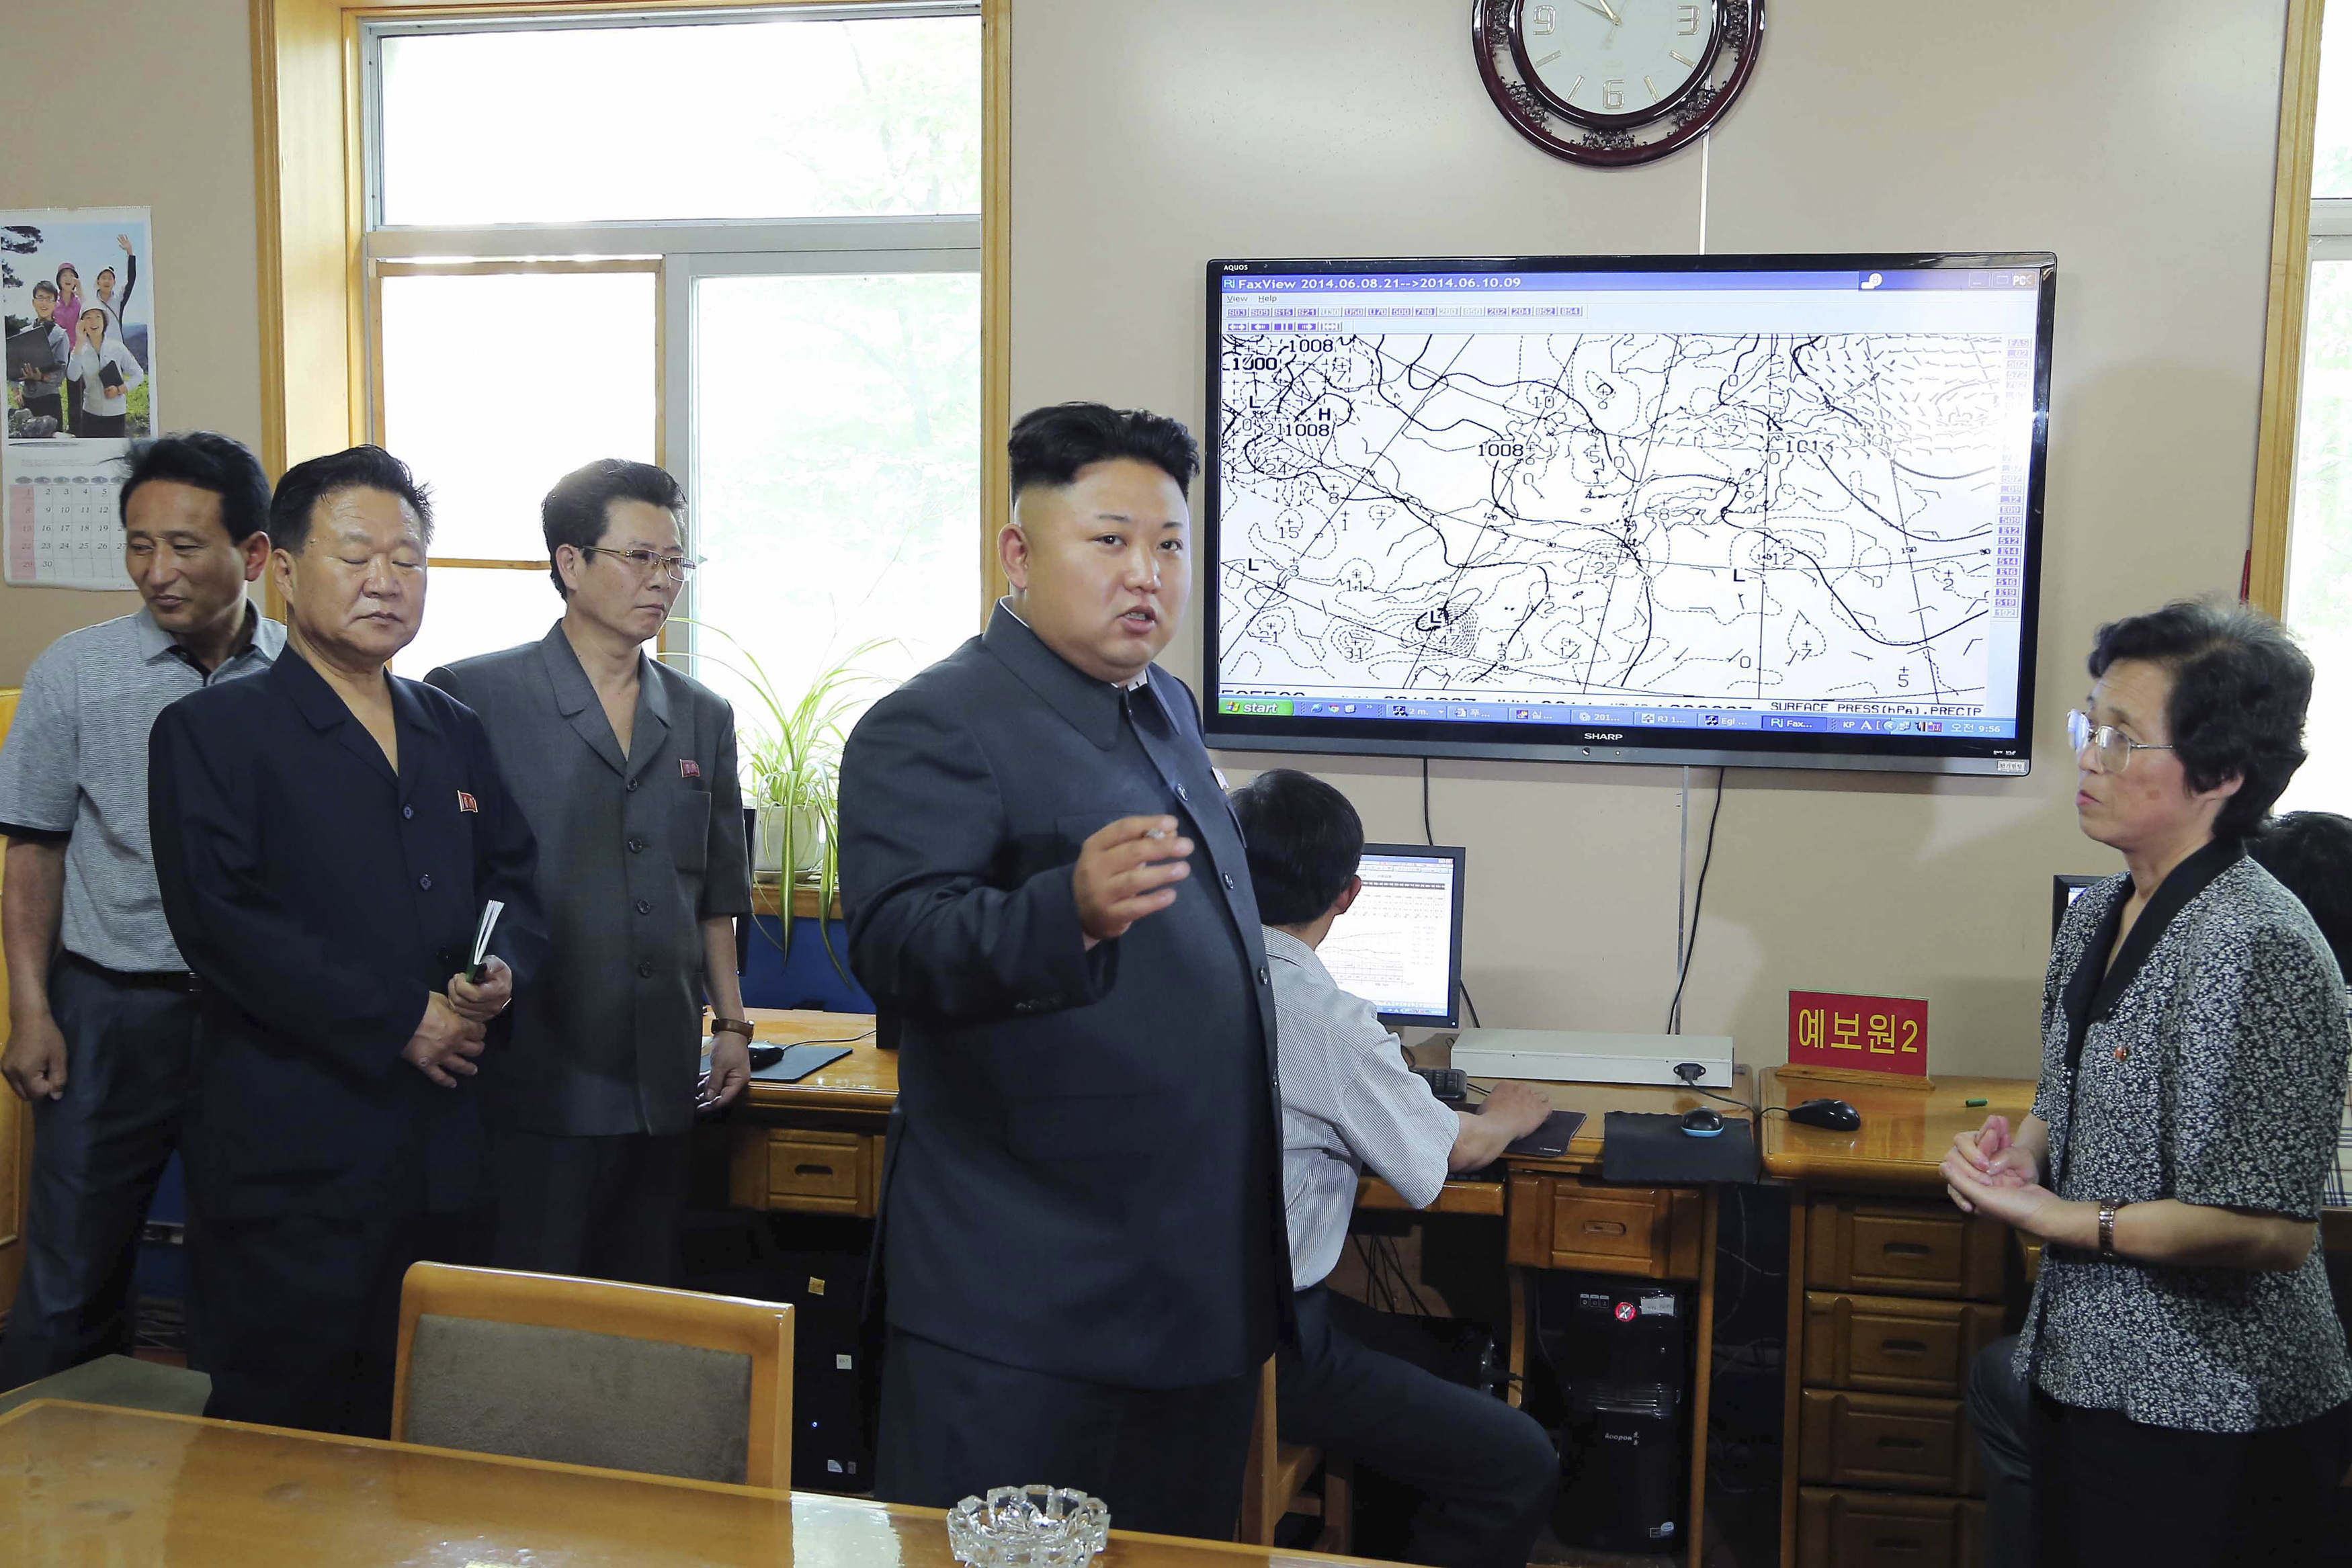 North Korean leader Kim Jong Un gives field guidance to the hydrometeorological service in this undated photo released by North Korea's Korean Central News Agency in Pyongyang on June 10, 2014